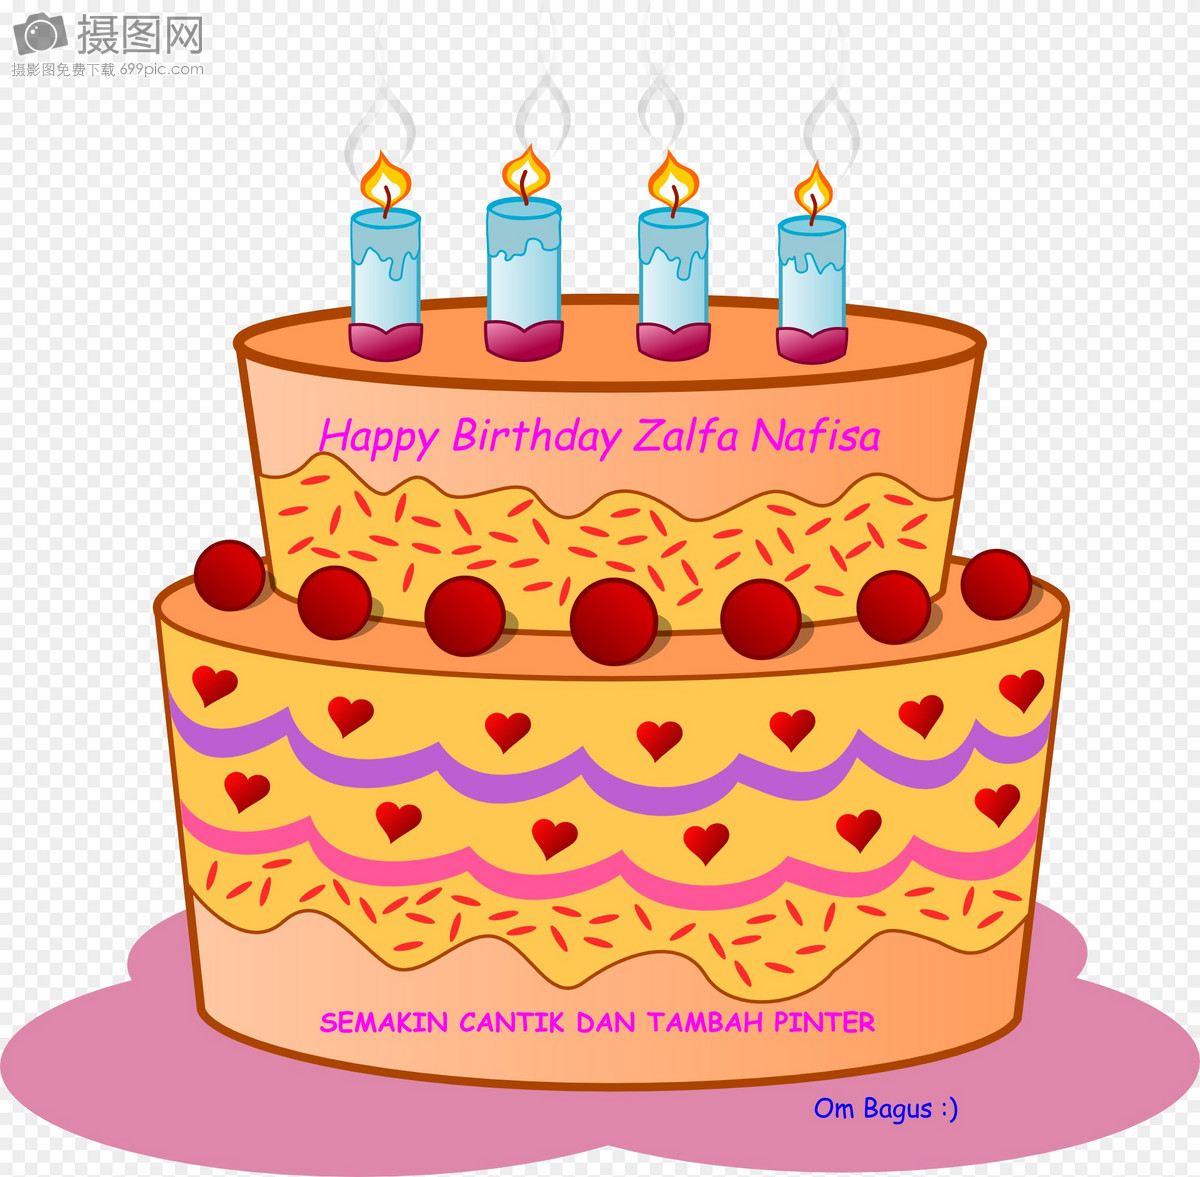 Birthday Cake Graphics Imagepicture Free Download 400026910lovepik